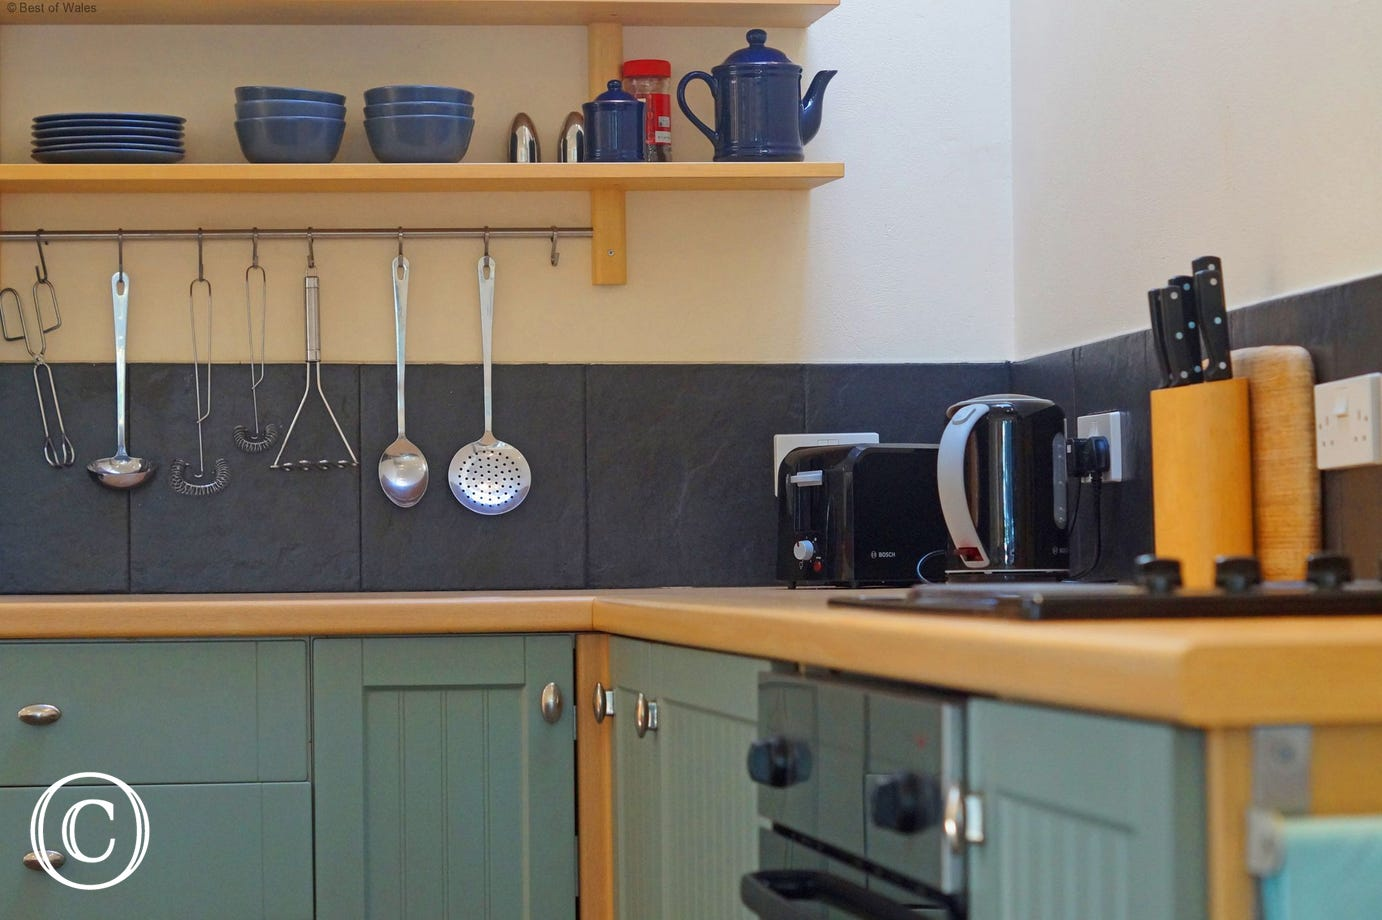 Self-catering Llanberis cottage in Snowdonia, North Wales